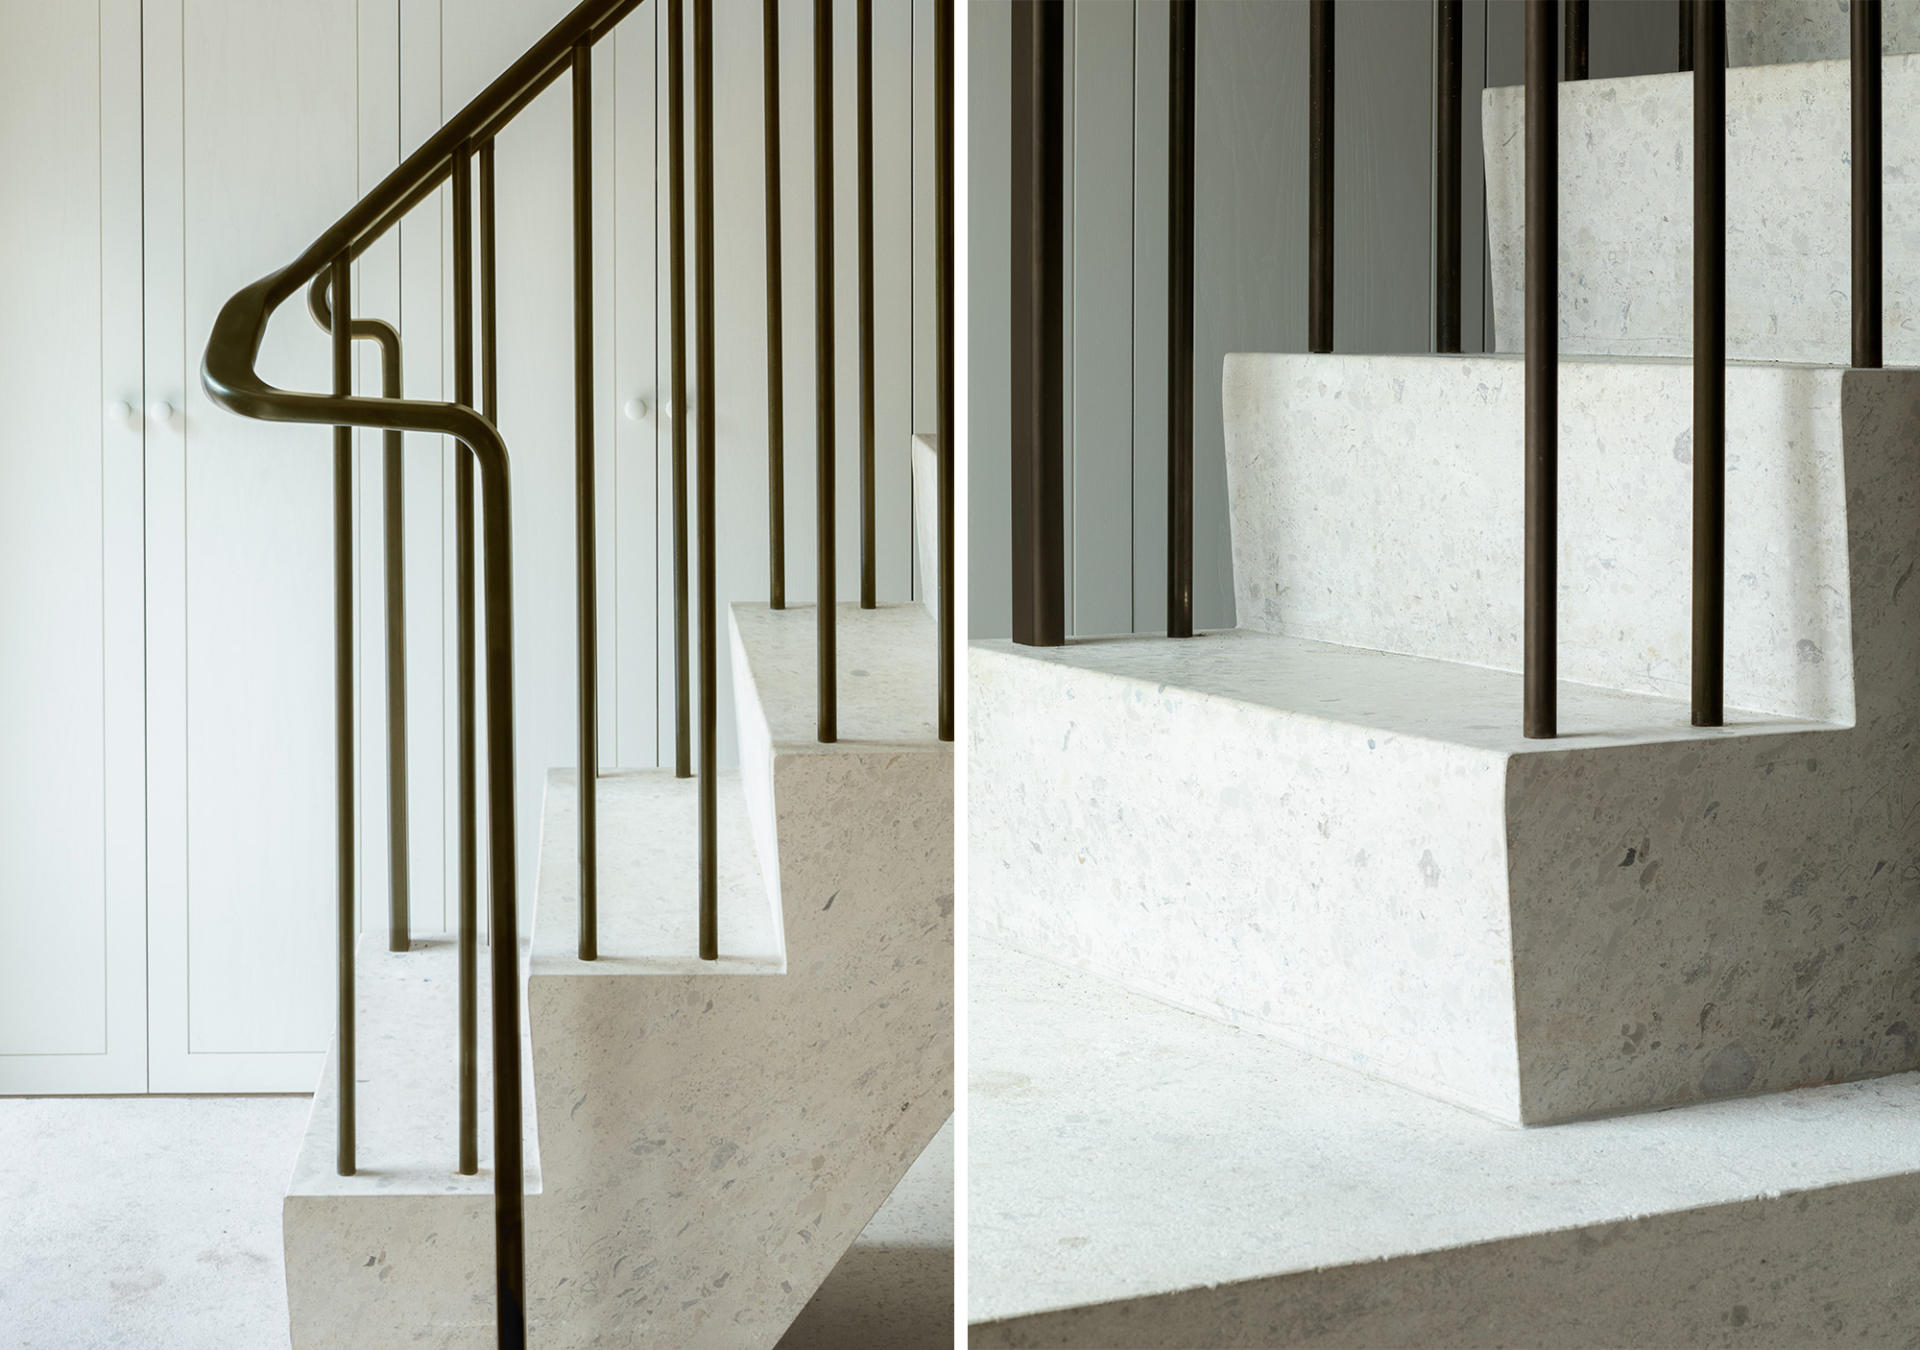 Curved staircase hand rail and balustrade made for West Architecture by Collier Webb